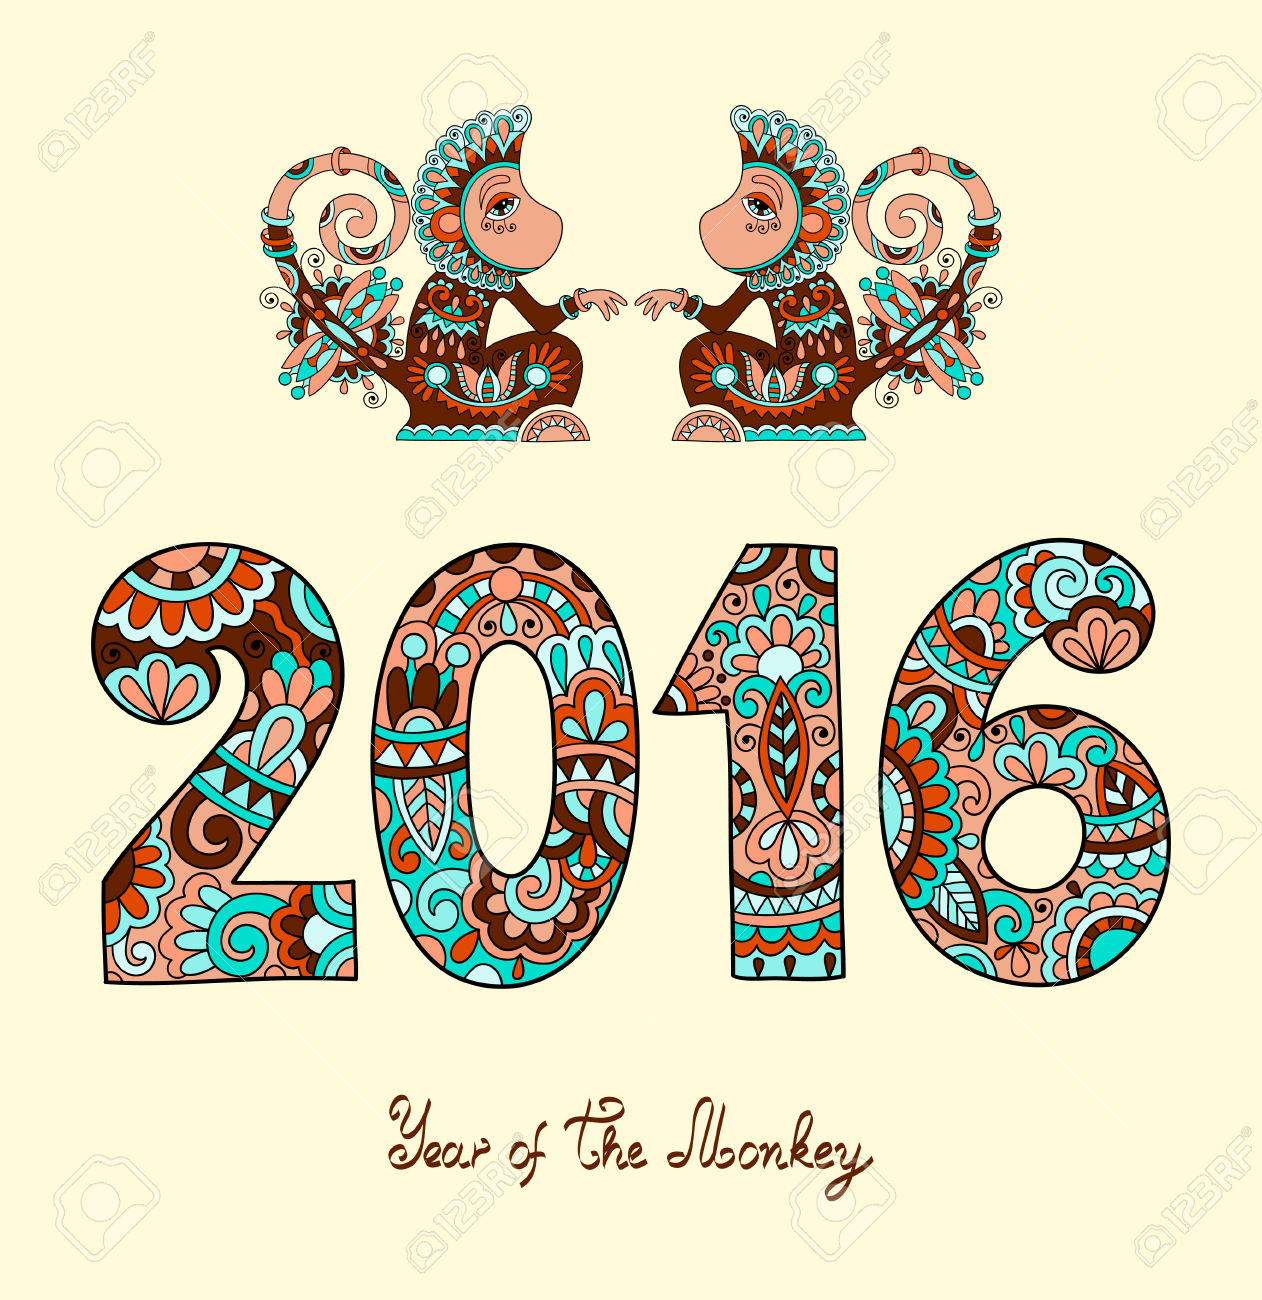 monday 8 02 2016 happy chinese new year of the red monkey - Chinese New Year Of The Monkey